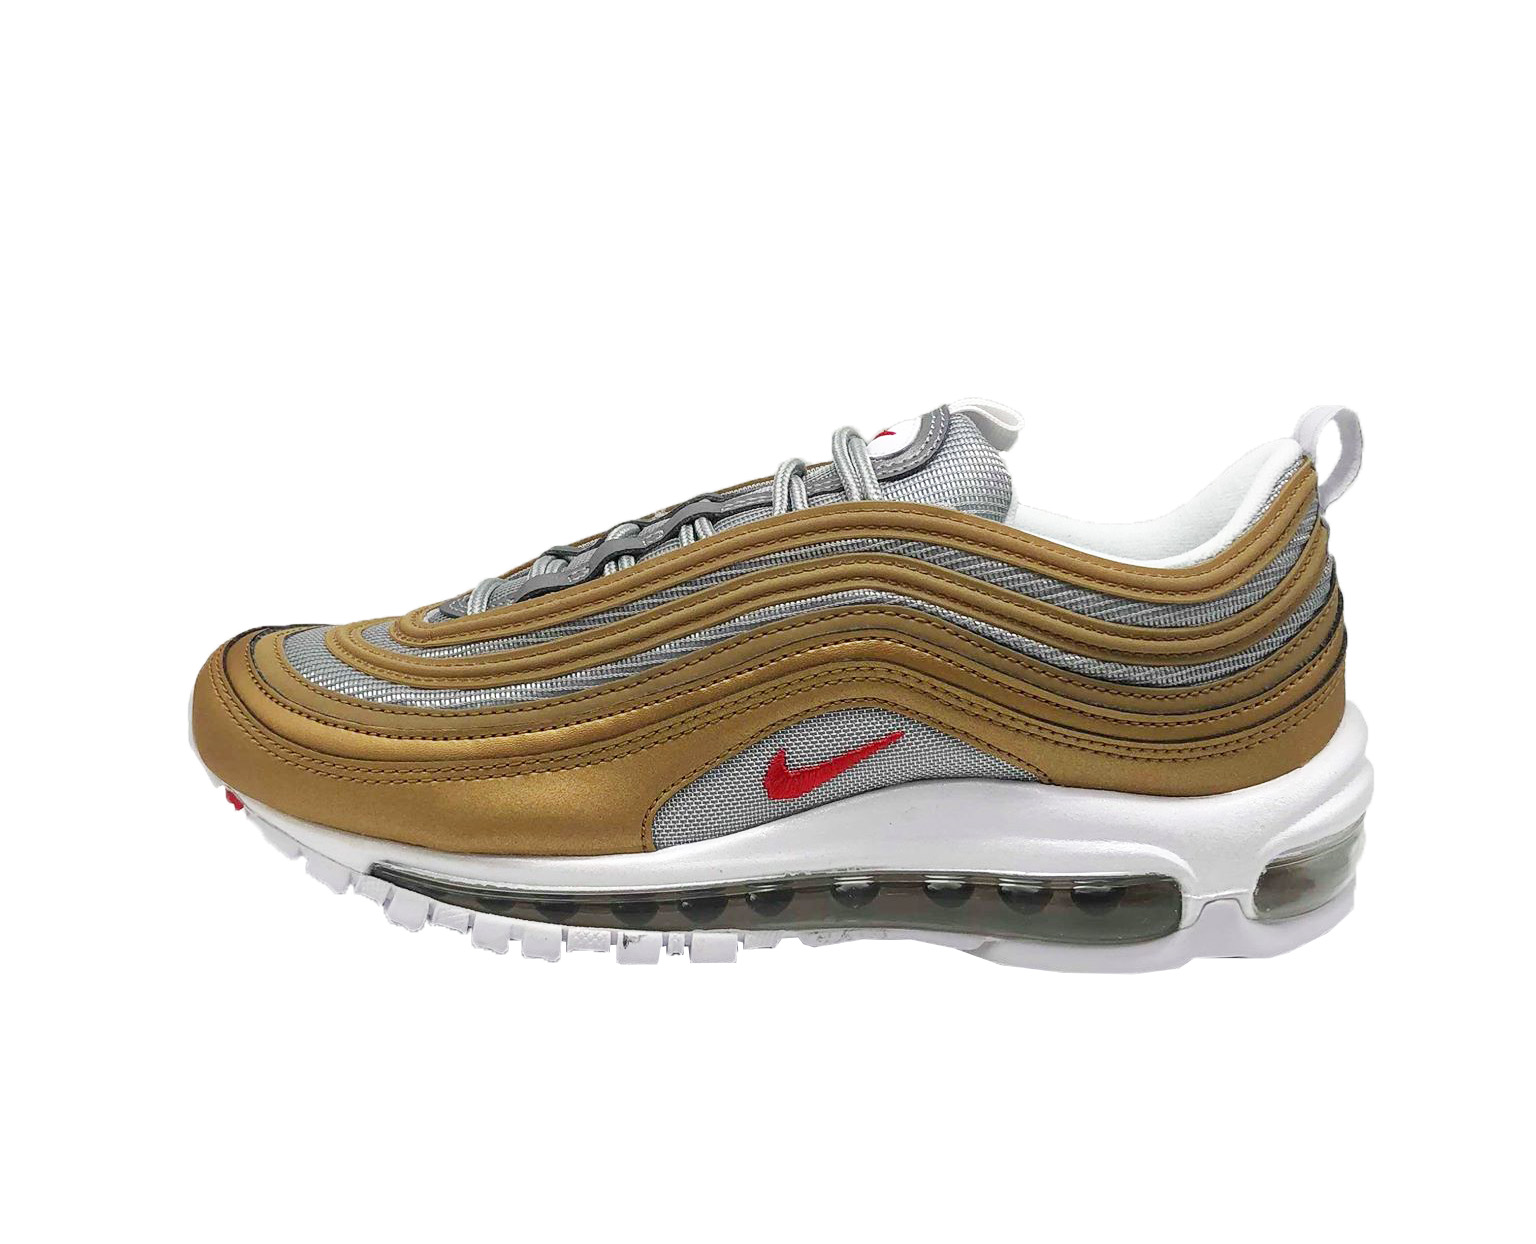 Details about Nike Air Max 97 SSL BV0306 700 Mens Trainers